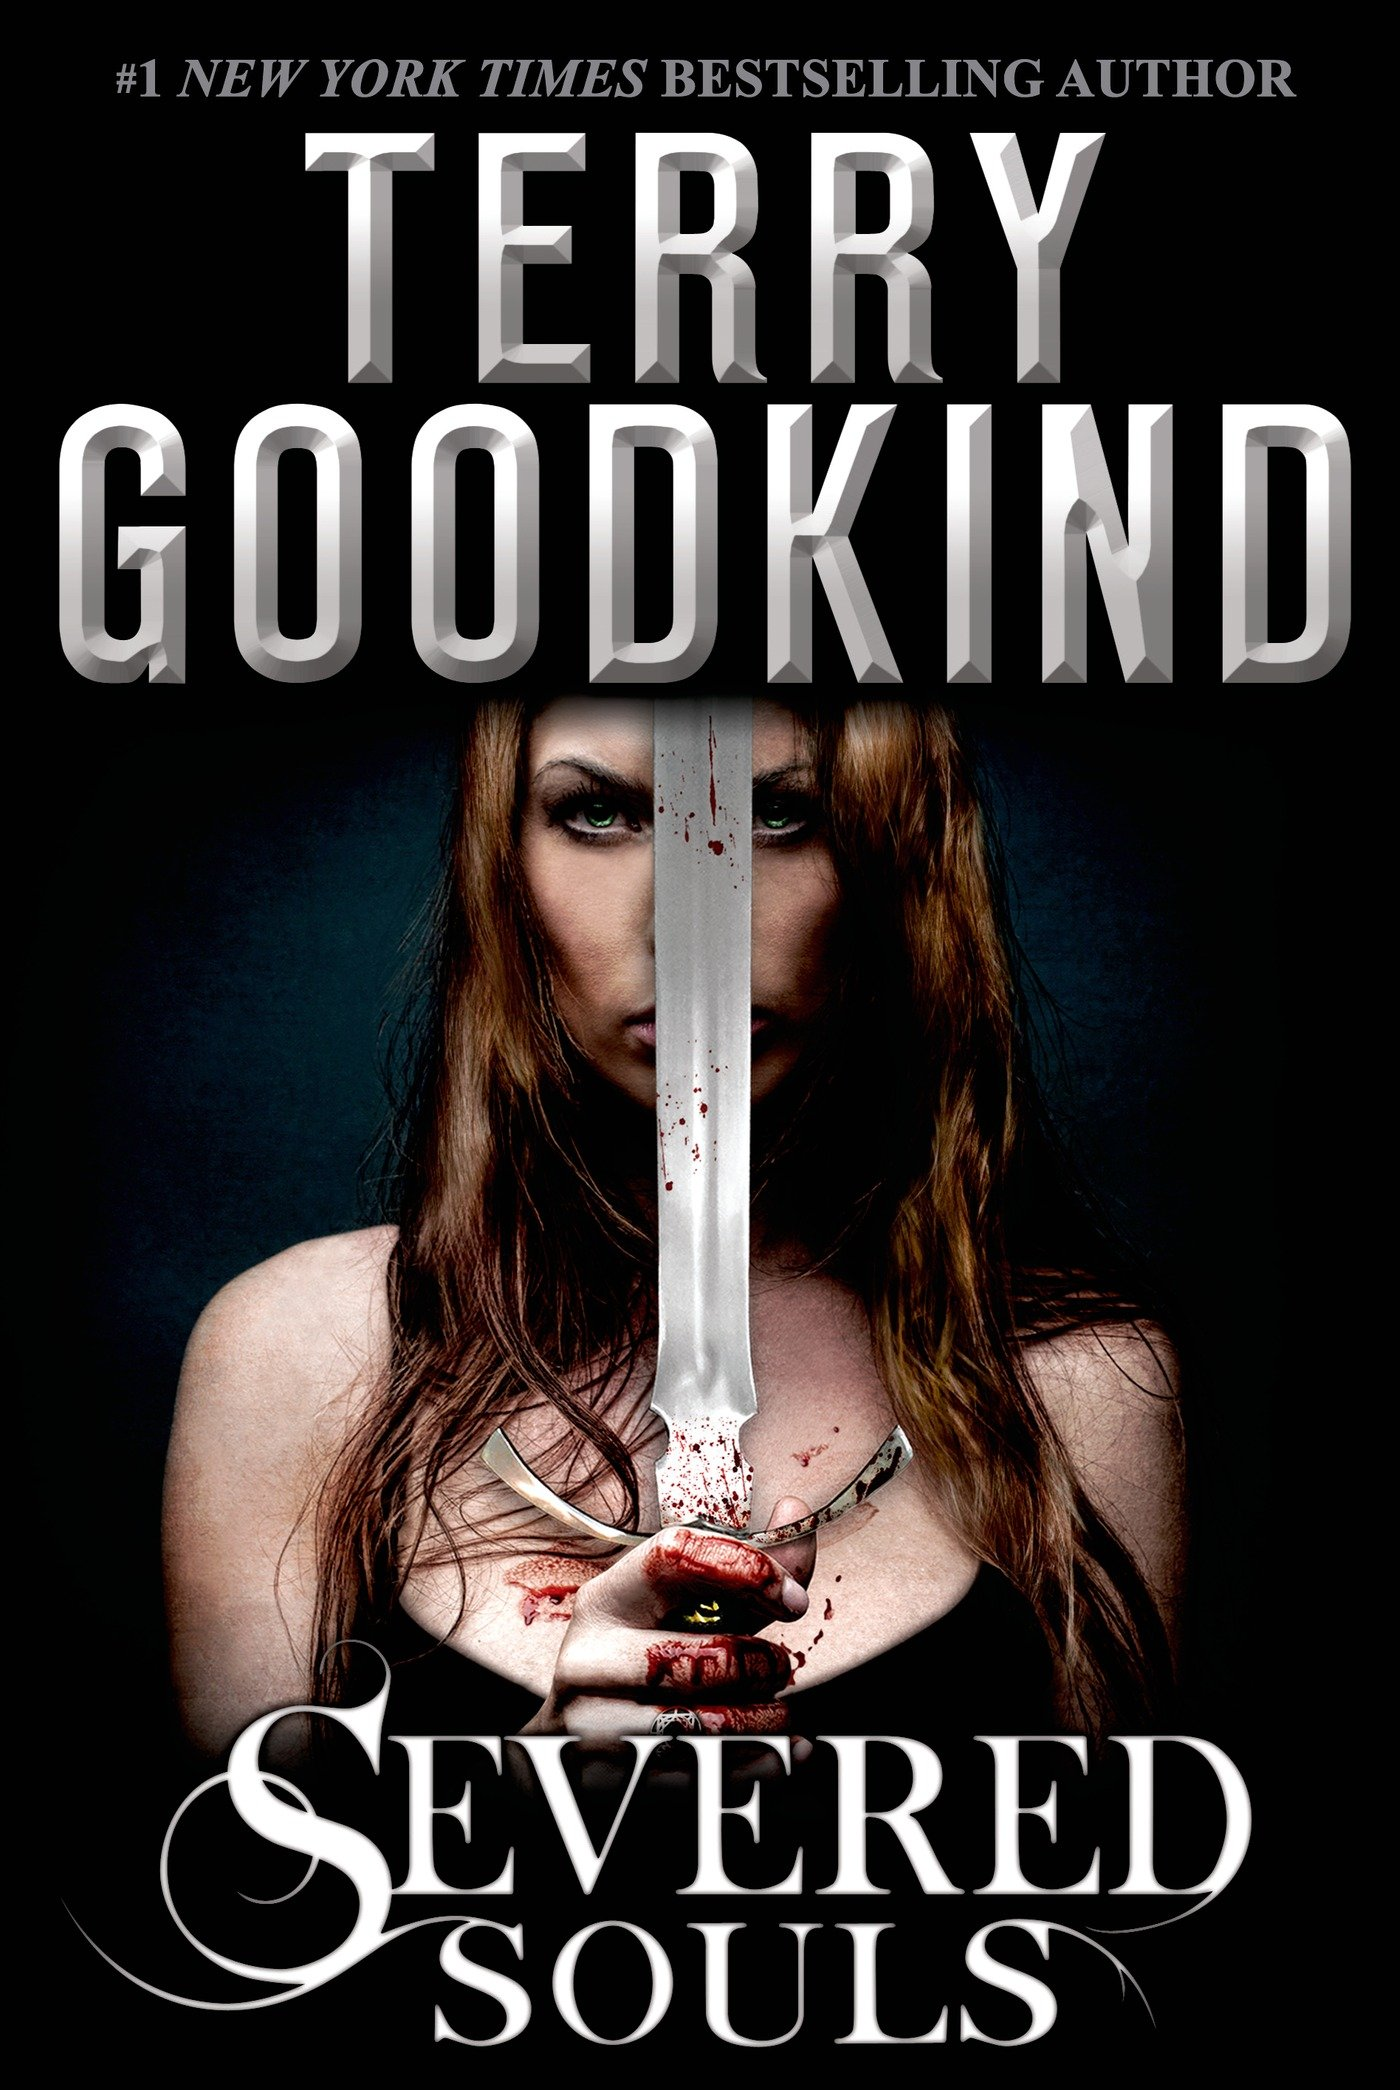 Terry Goodkind: Love and Hate Under One Cover 72